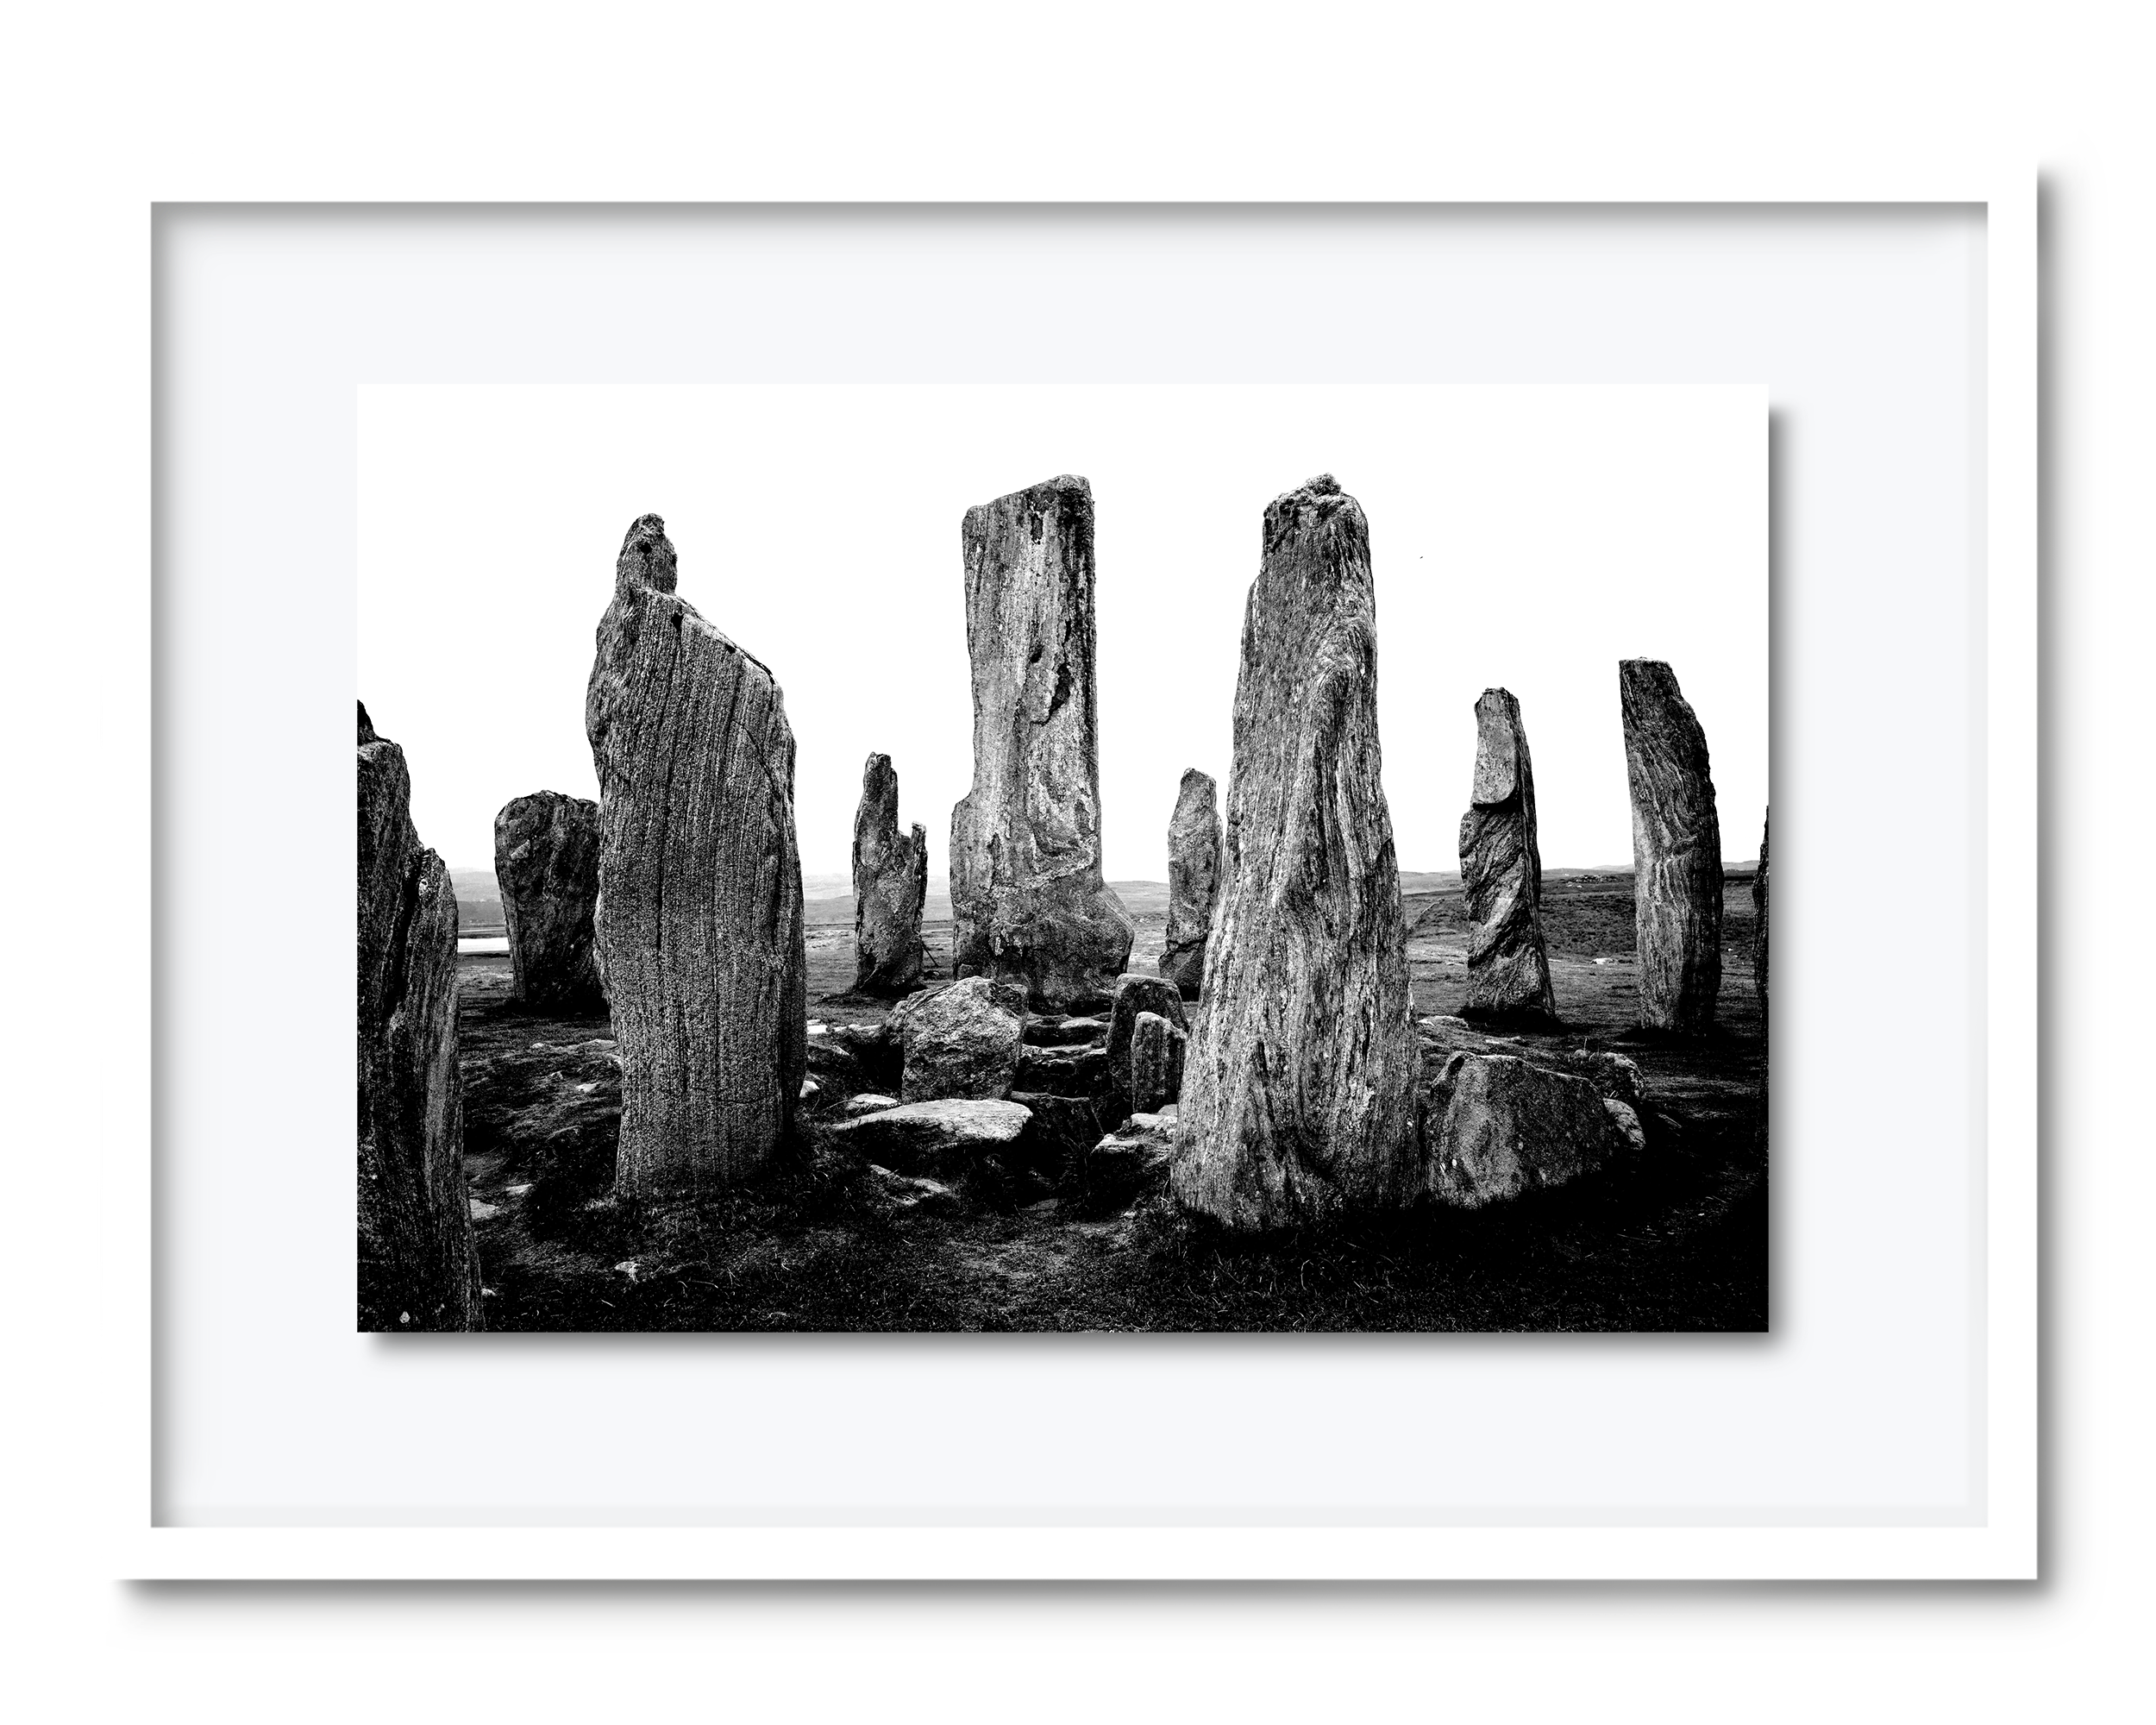 35.david-pearce-callanish-stones-outer-hebrides3.png